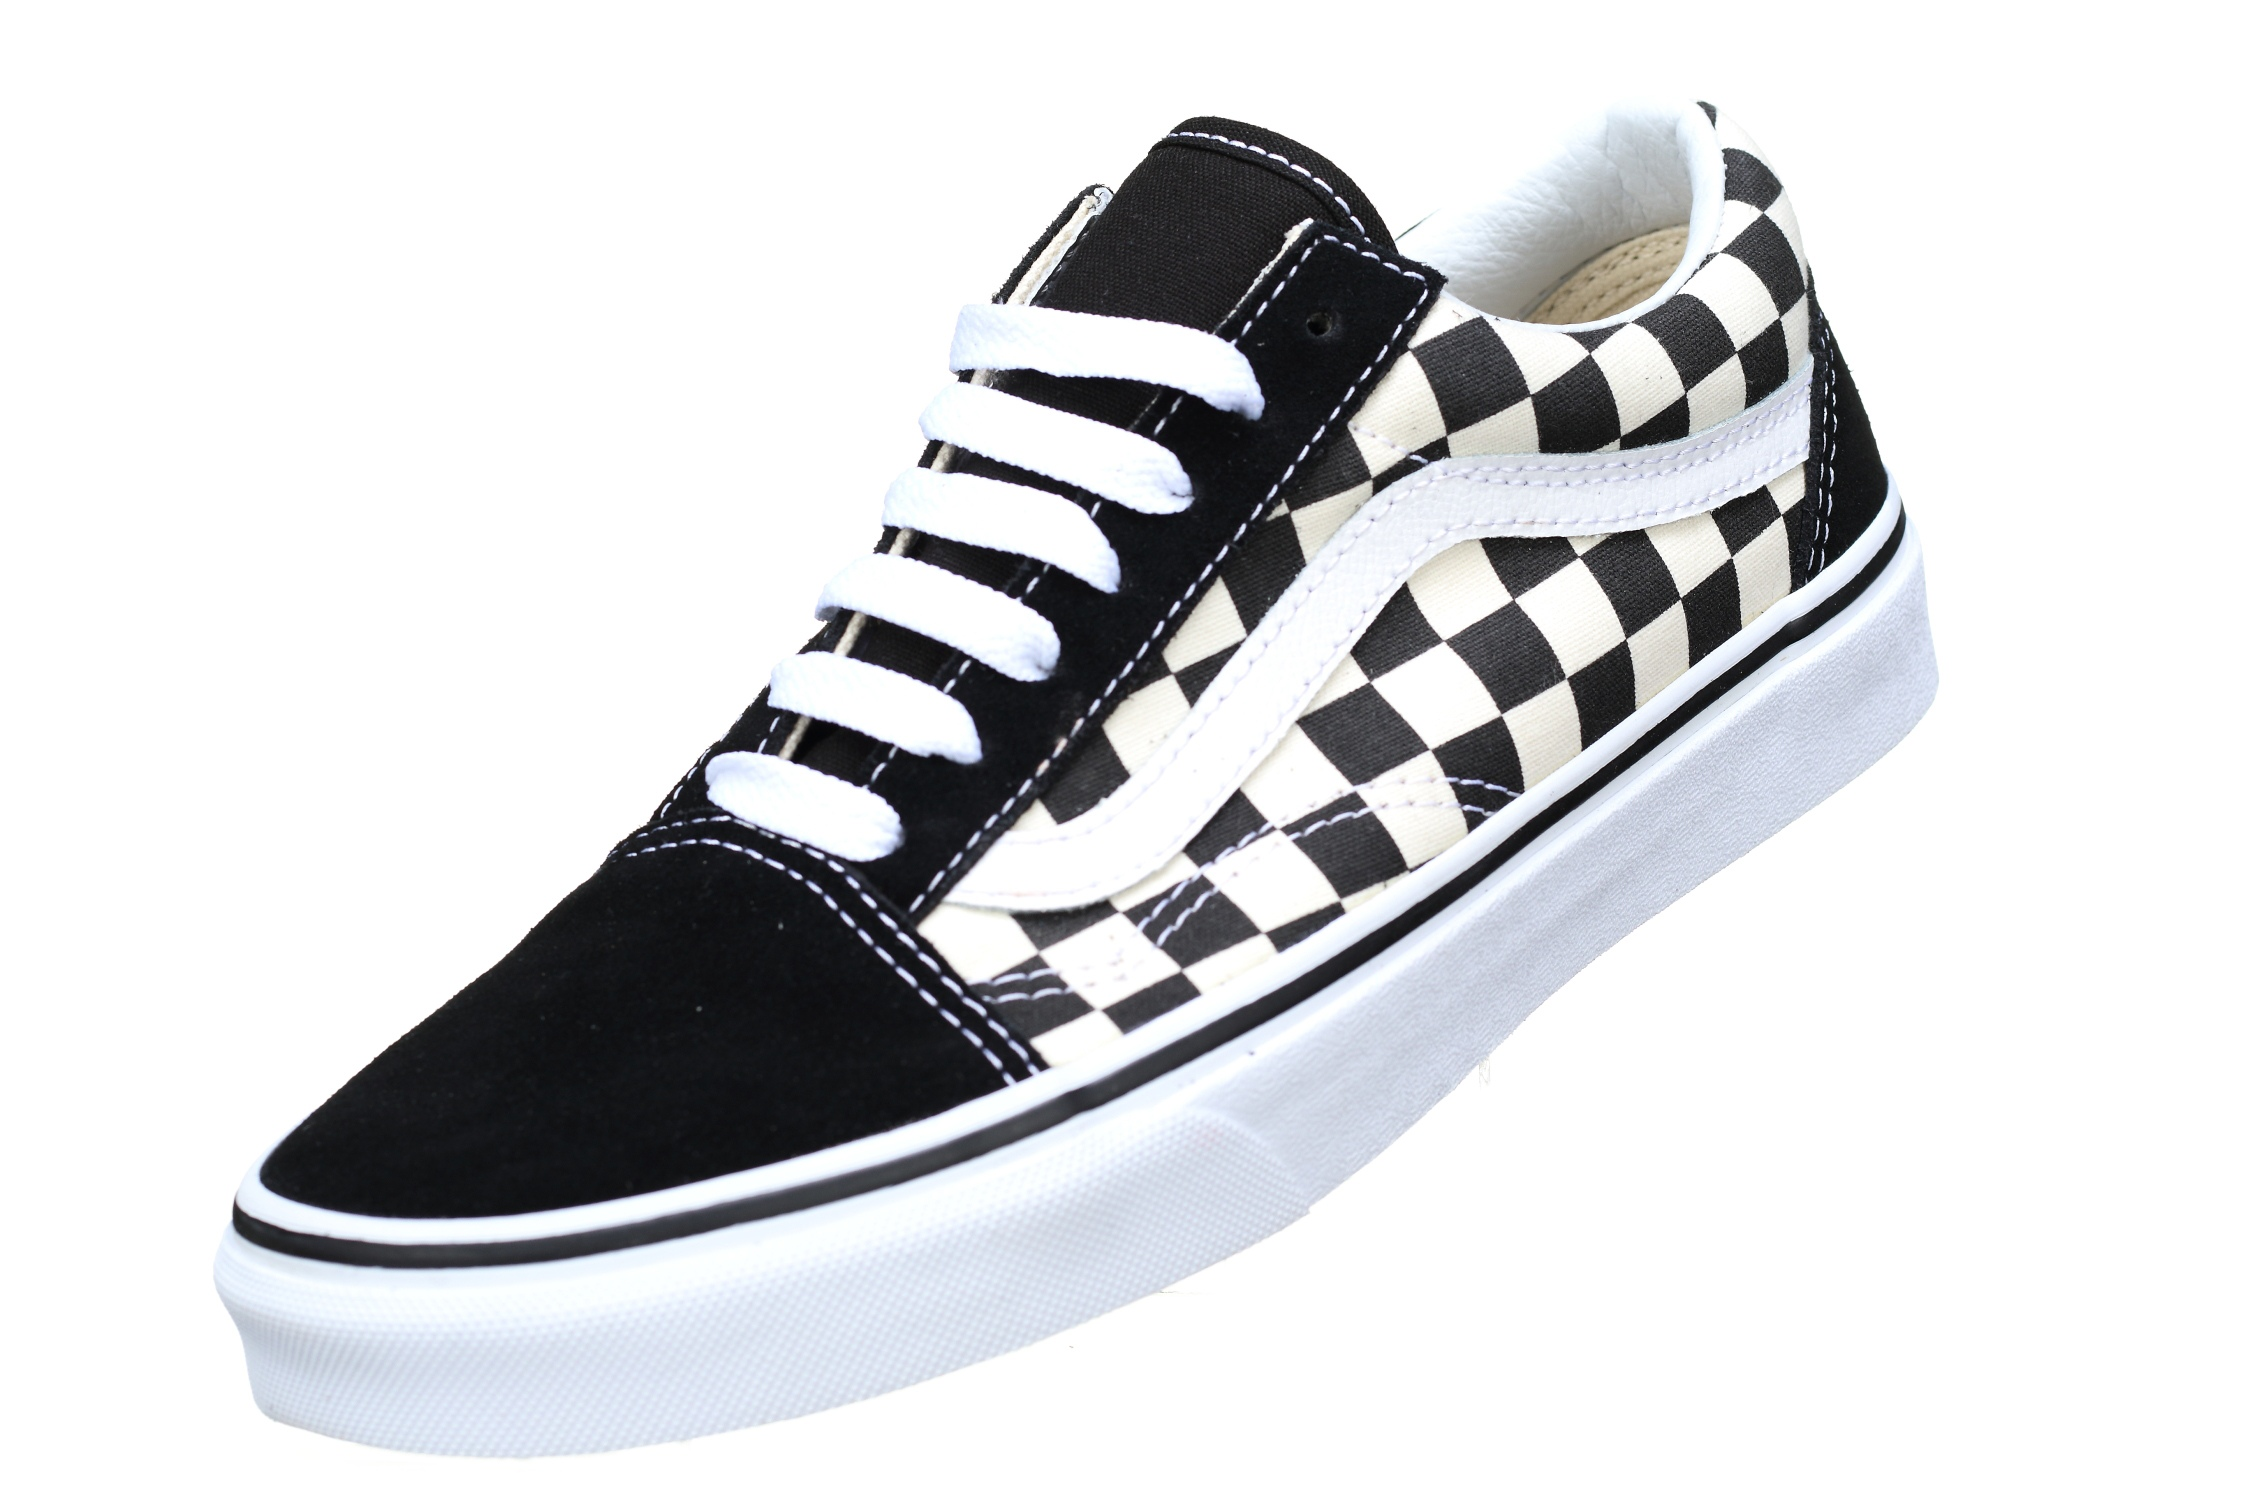 http://www.leadermode.com/155720/vans-old-skool-primary-check-vn0a38g1p0s-blk-white.jpg